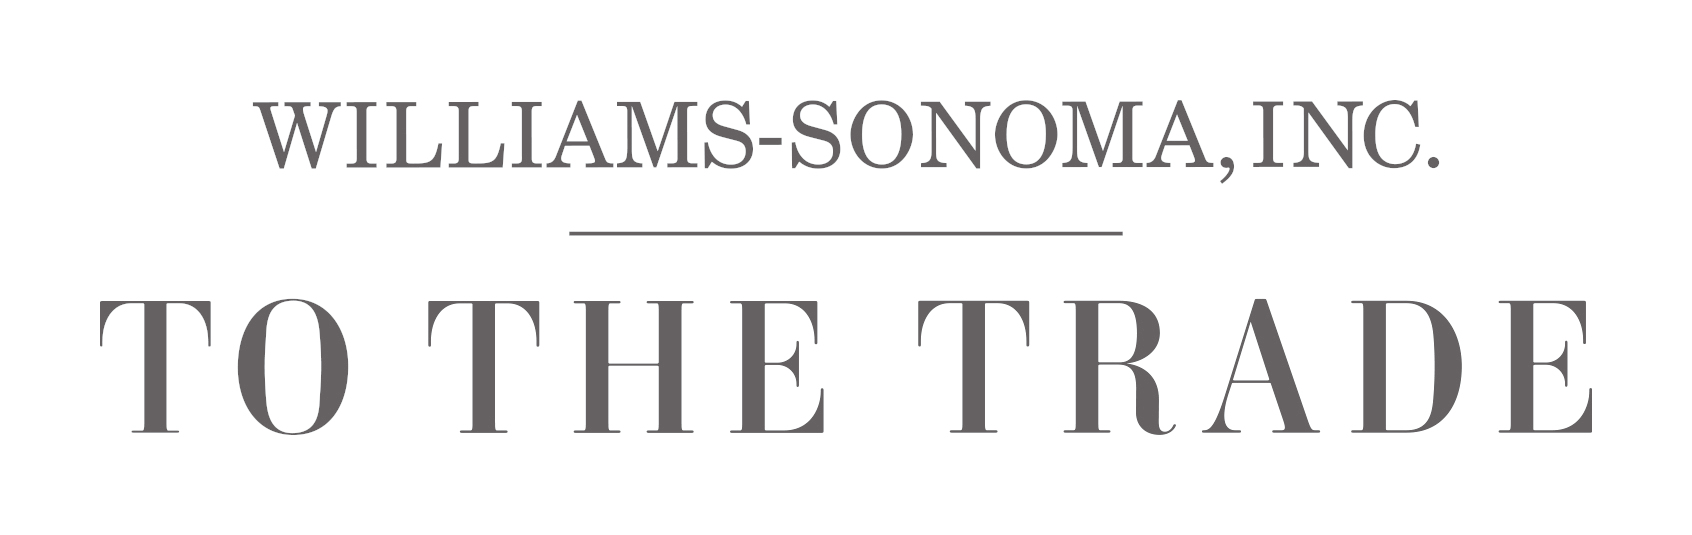 Williams Sonoma To the Trade